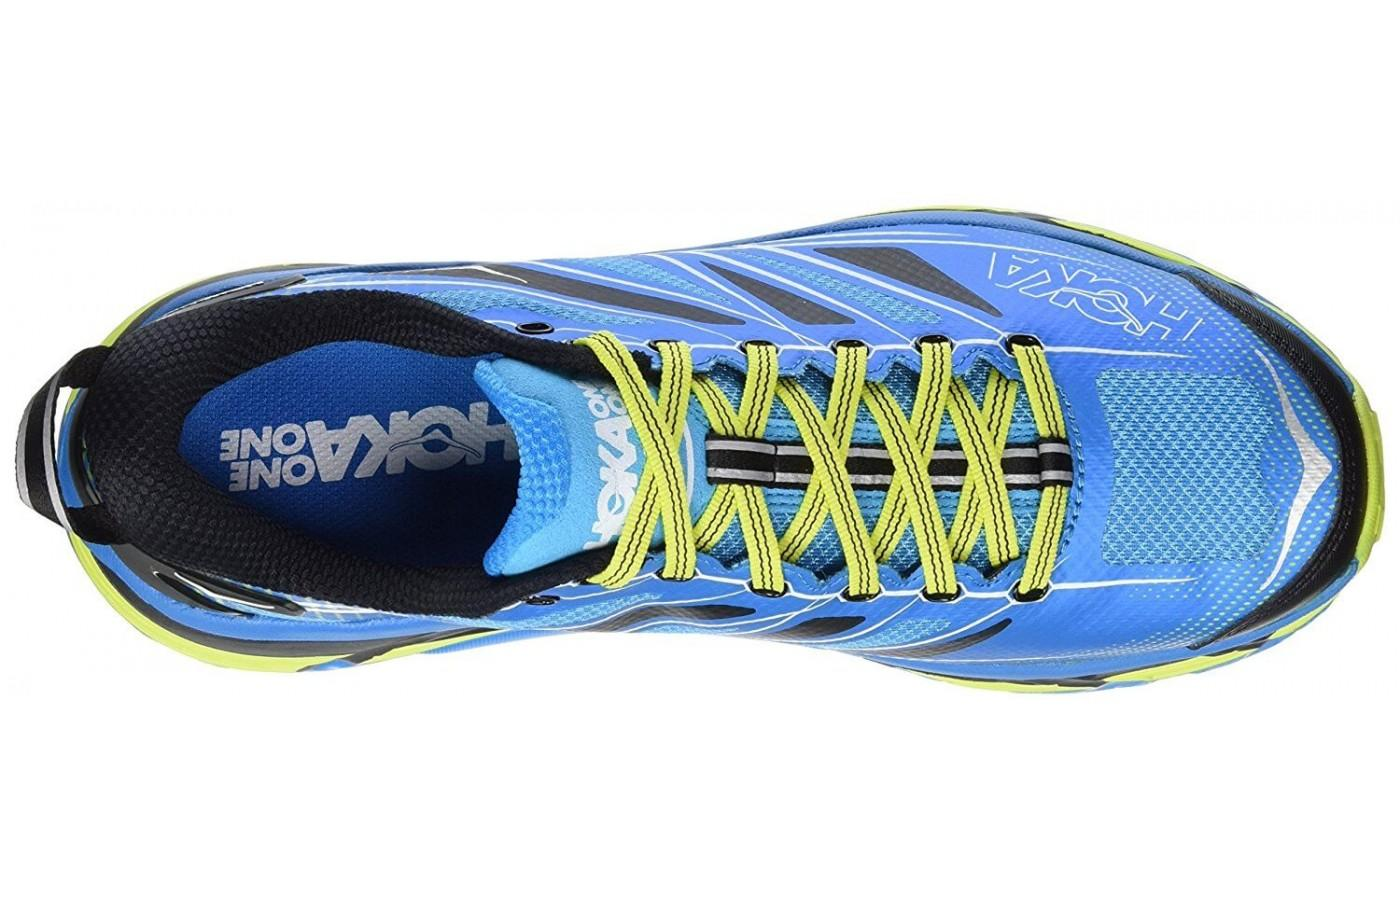 Hoka One One Mafate Speed 2 has a seamless upper for ultimate comfort